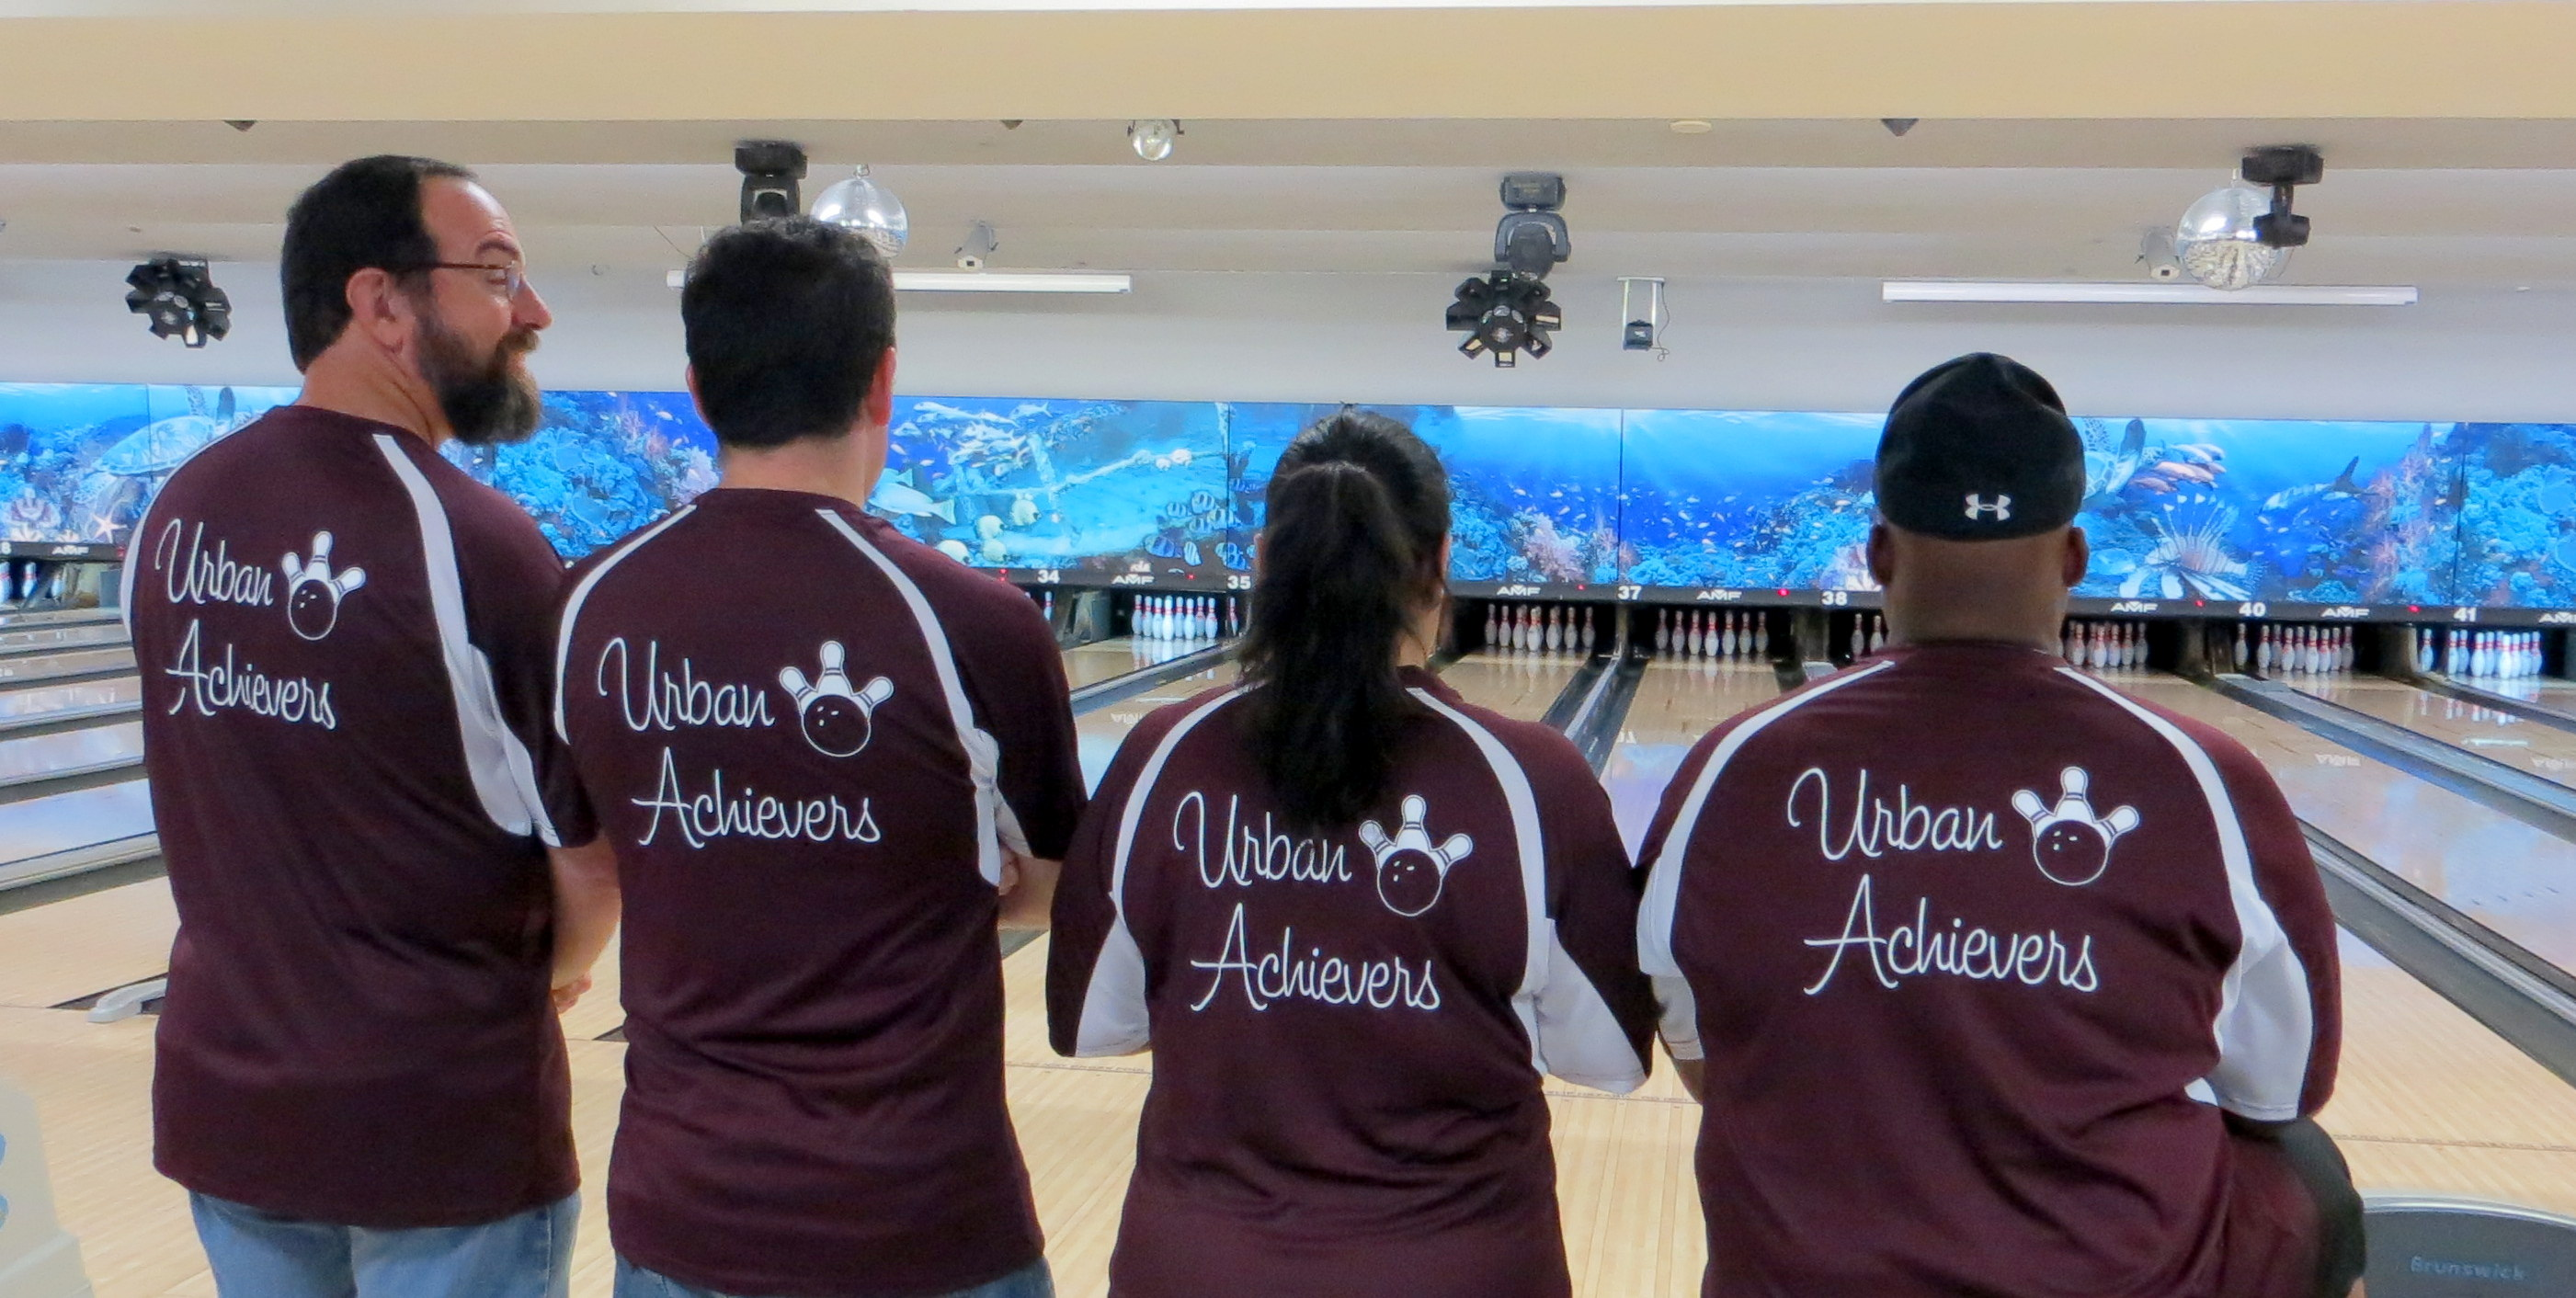 Custom t shirts for the urban achievers bowling team for Custom t shirts for teams